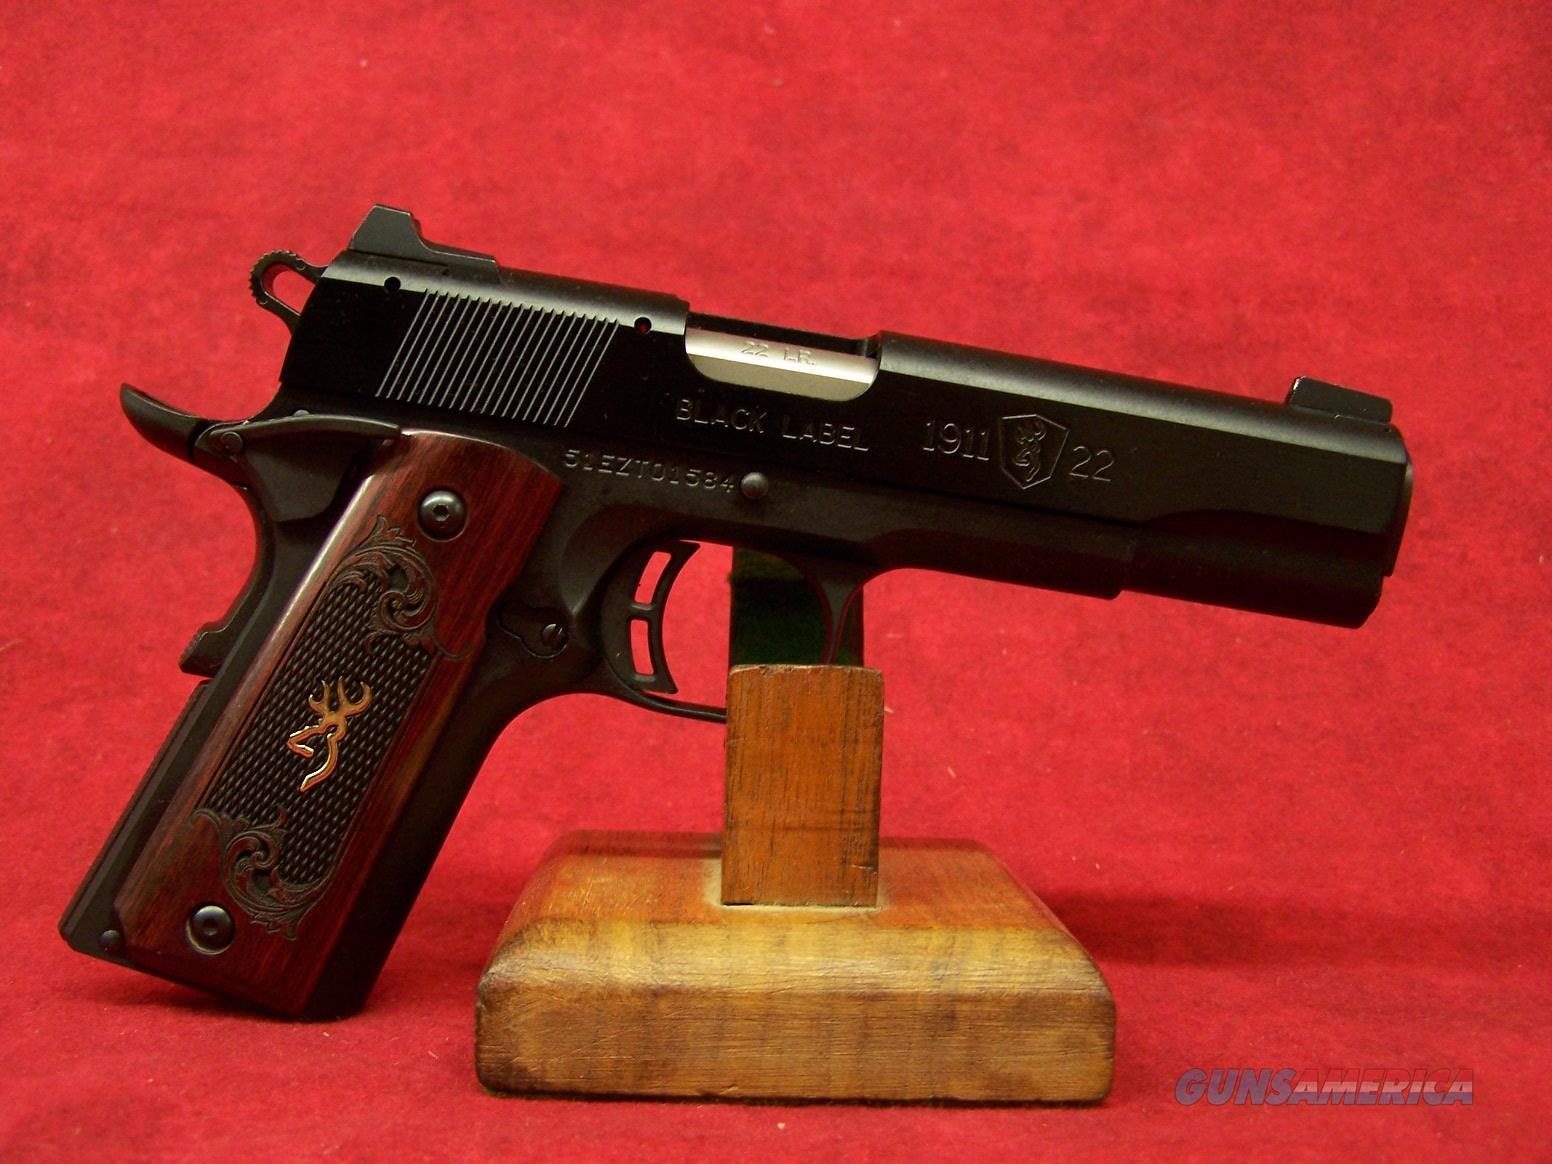 "BROWNING BLACK LABEL 1911-22 MEDALLION 22 LR 4.25"" BARREL (051851490)  Guns > Pistols > Browning Pistols > Other Autos"